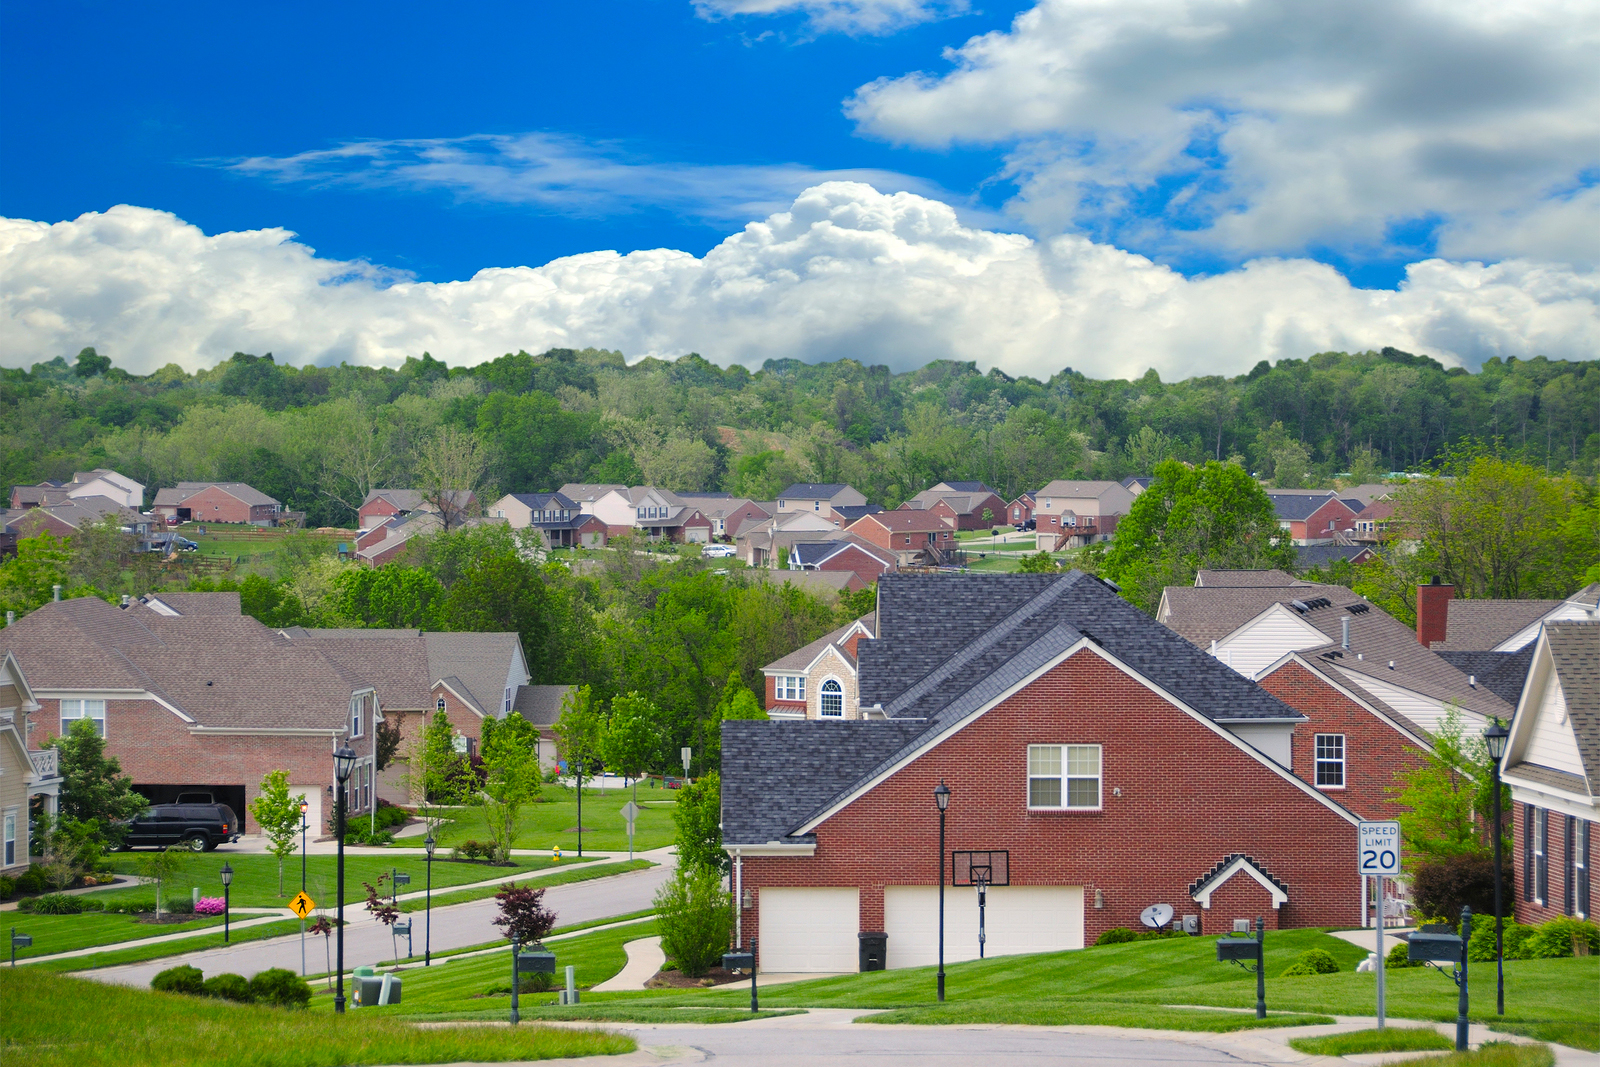 Homeowner Associations can seem annoying with their fees, however they actually hold a lot of benefits.